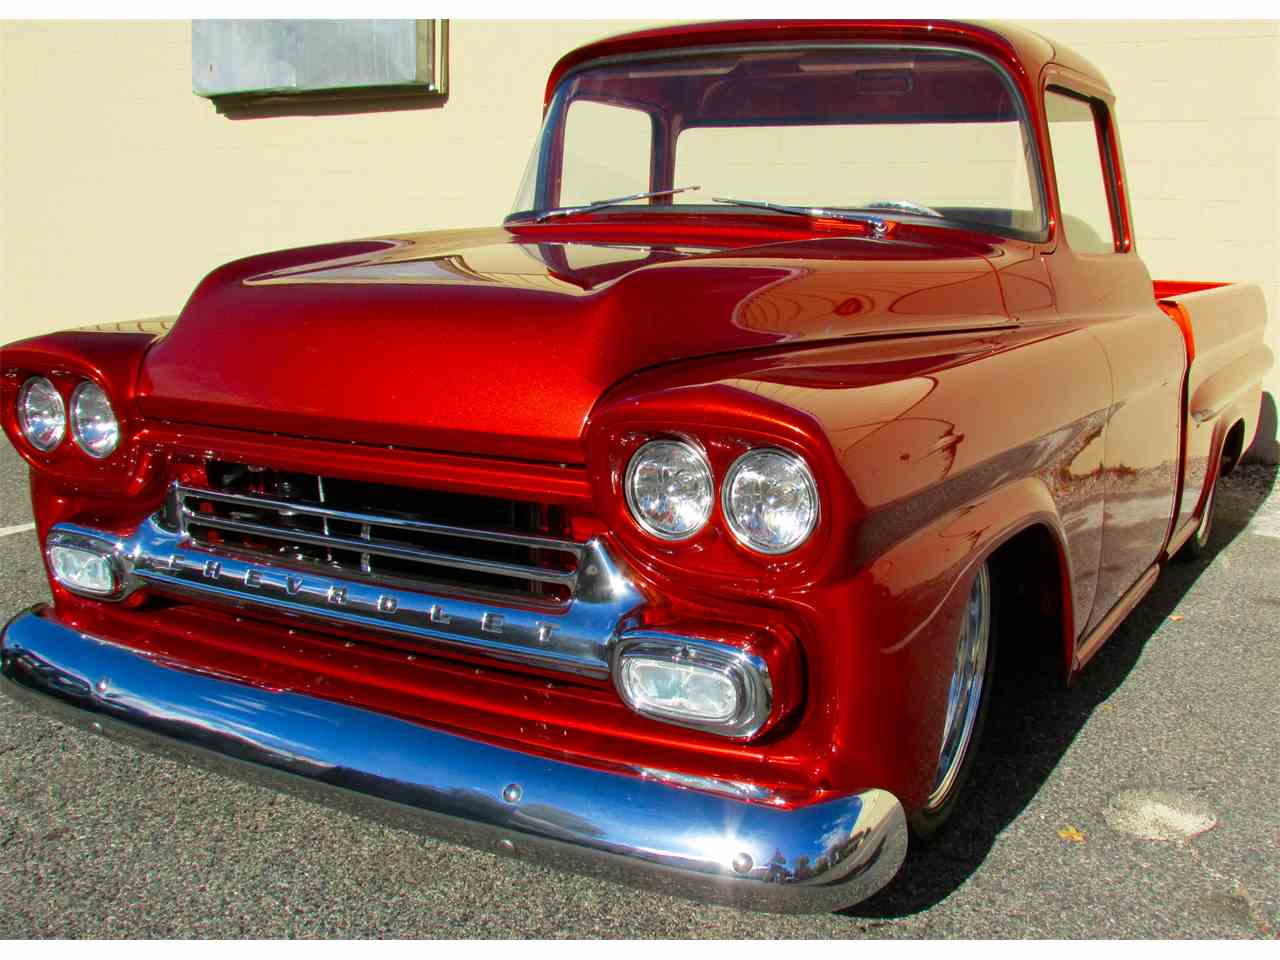 Large Picture of Classic 1959 Fleetside Custom Pickup Truck  located in Massachusetts Offered by a Private Seller - JPTV